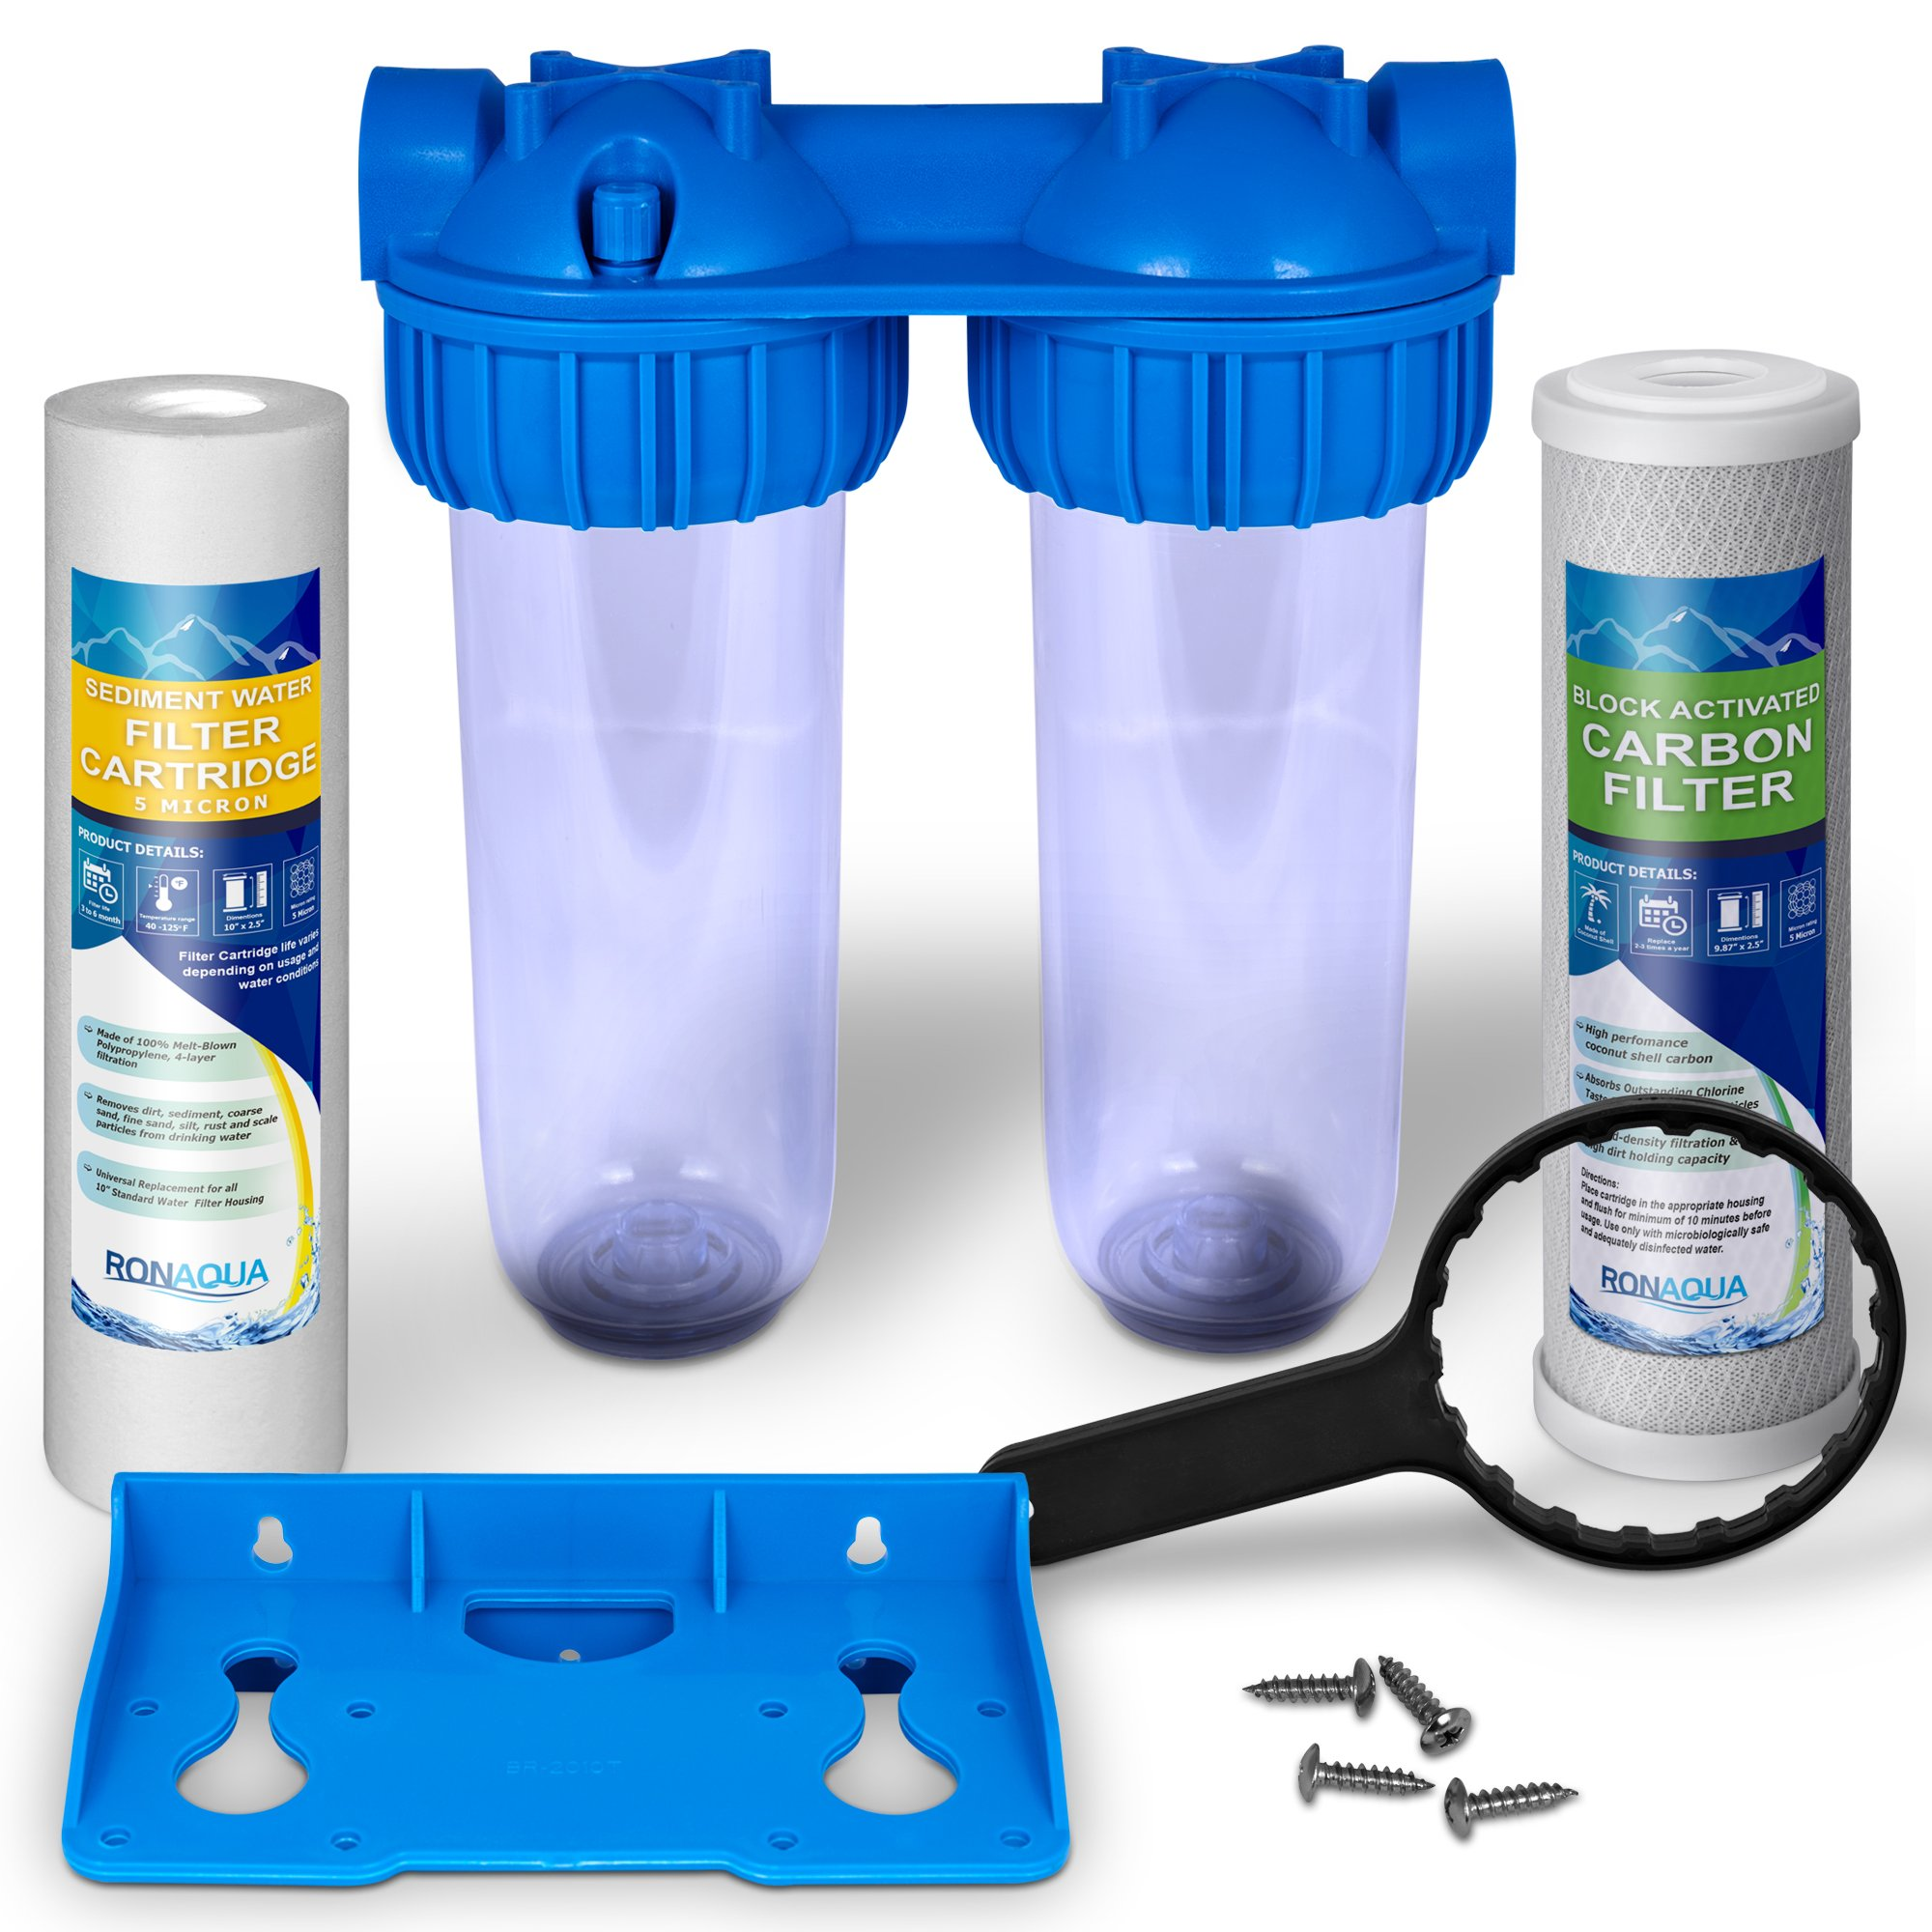 Dual Whole House Water Filter Purifier (Carbon Block and Sediment Filters)